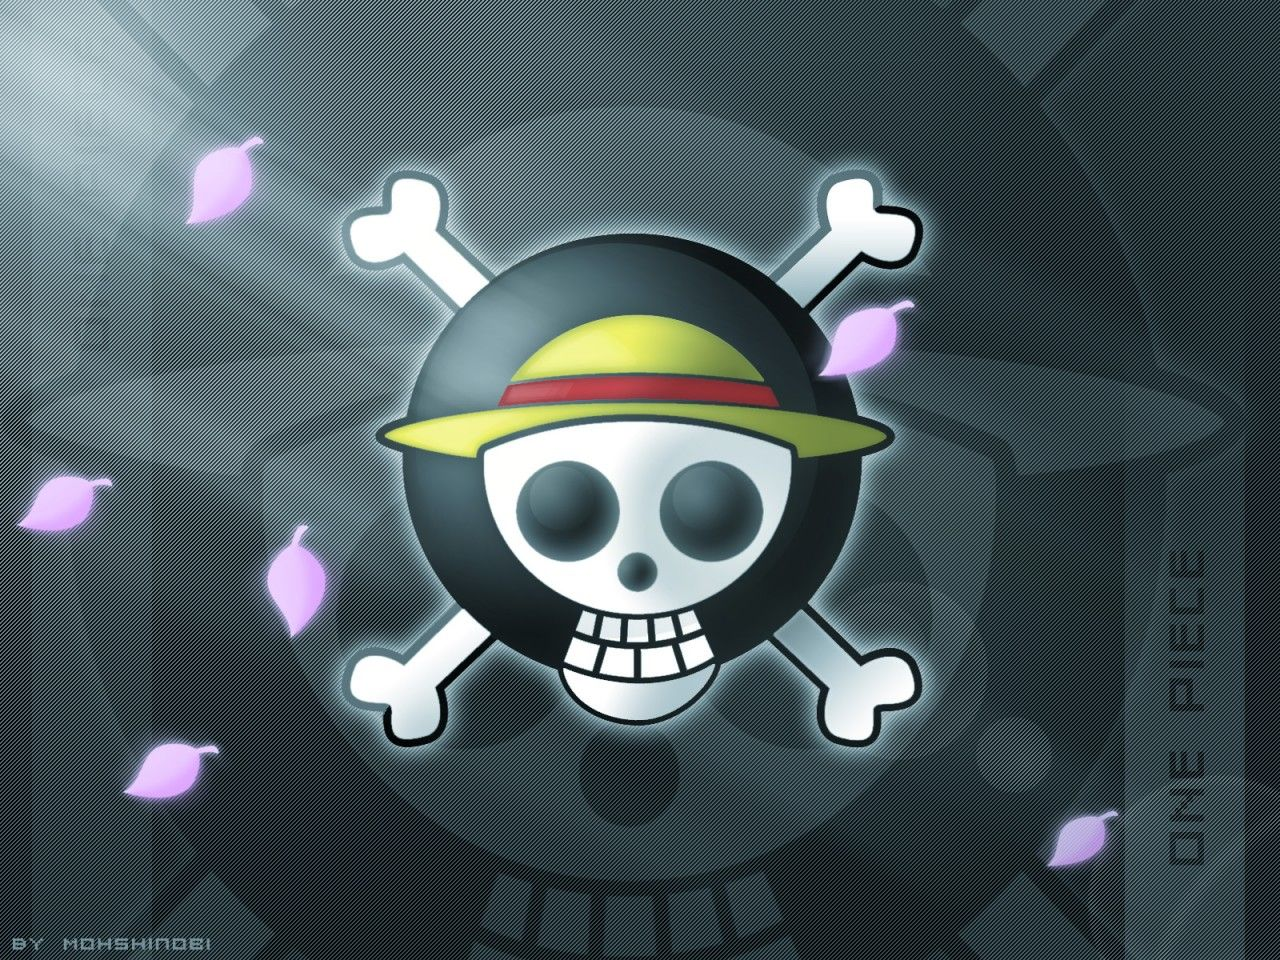 Logo One Piece Wallpapers Top Free Logo One Piece Backgrounds Wallpaperaccess